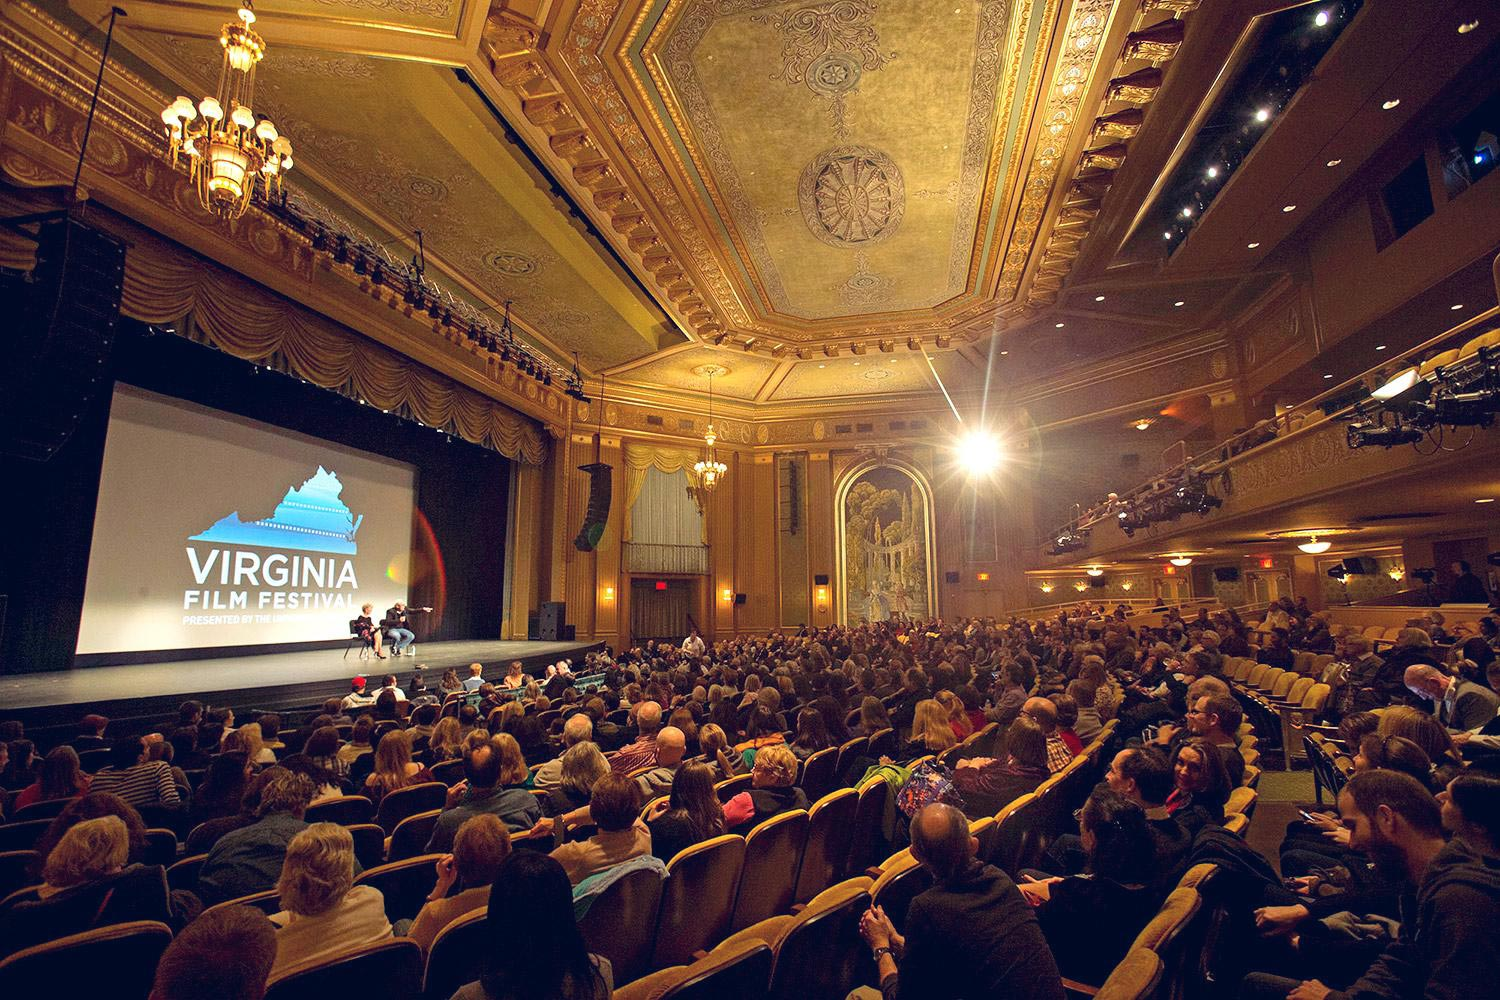 The Virginia Film Festival regularly draws capacity crowds to Charlottesville for film screenings, discussion sections and workshops.